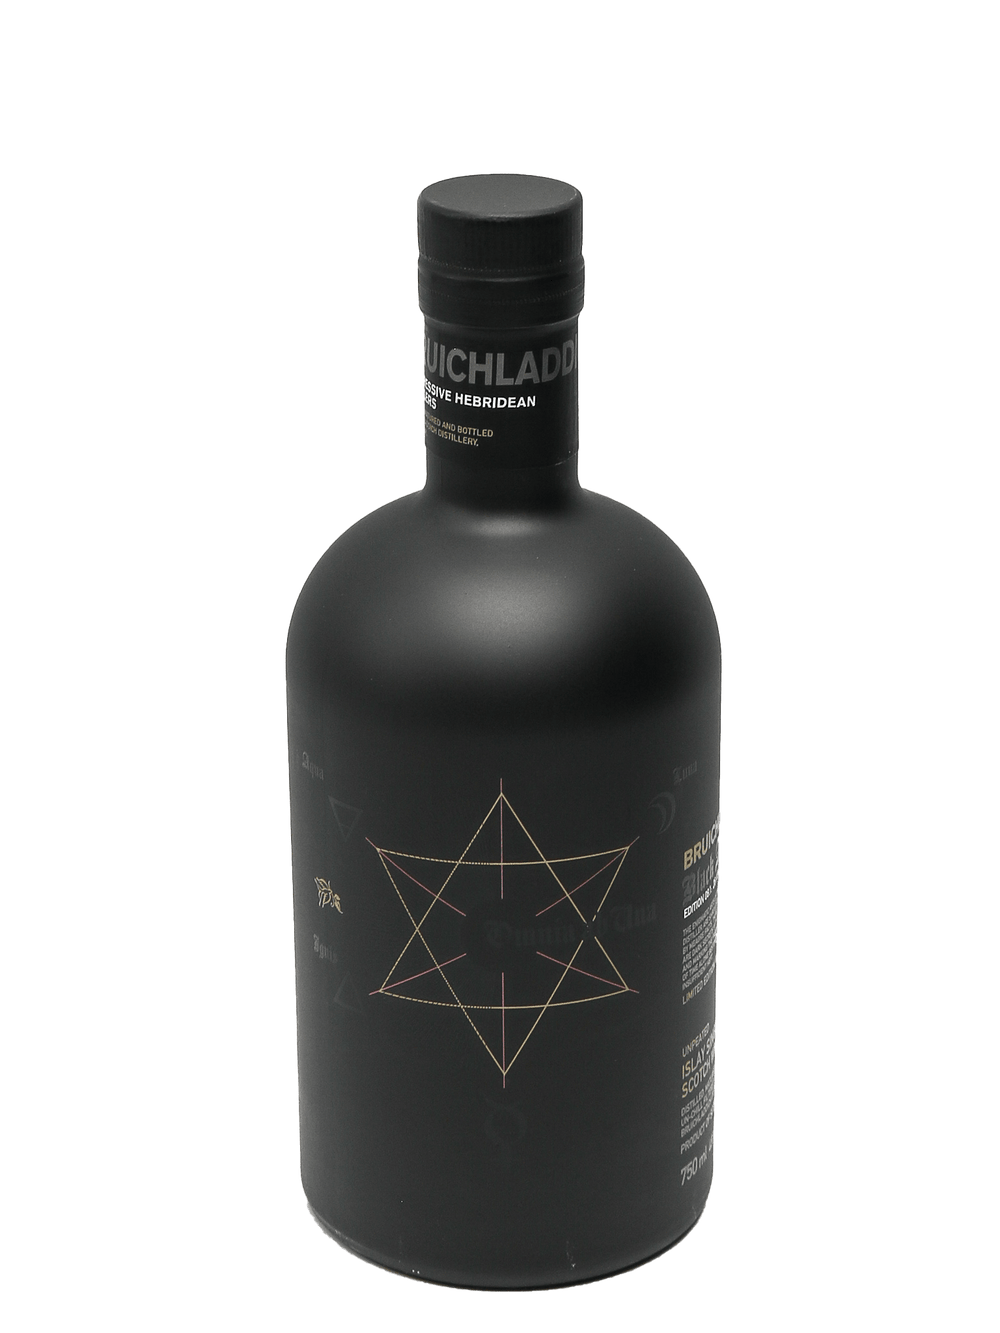 Bruichladdich Black Art 1994 Ed.08.1 26 Year Islay Single Malt 750ml